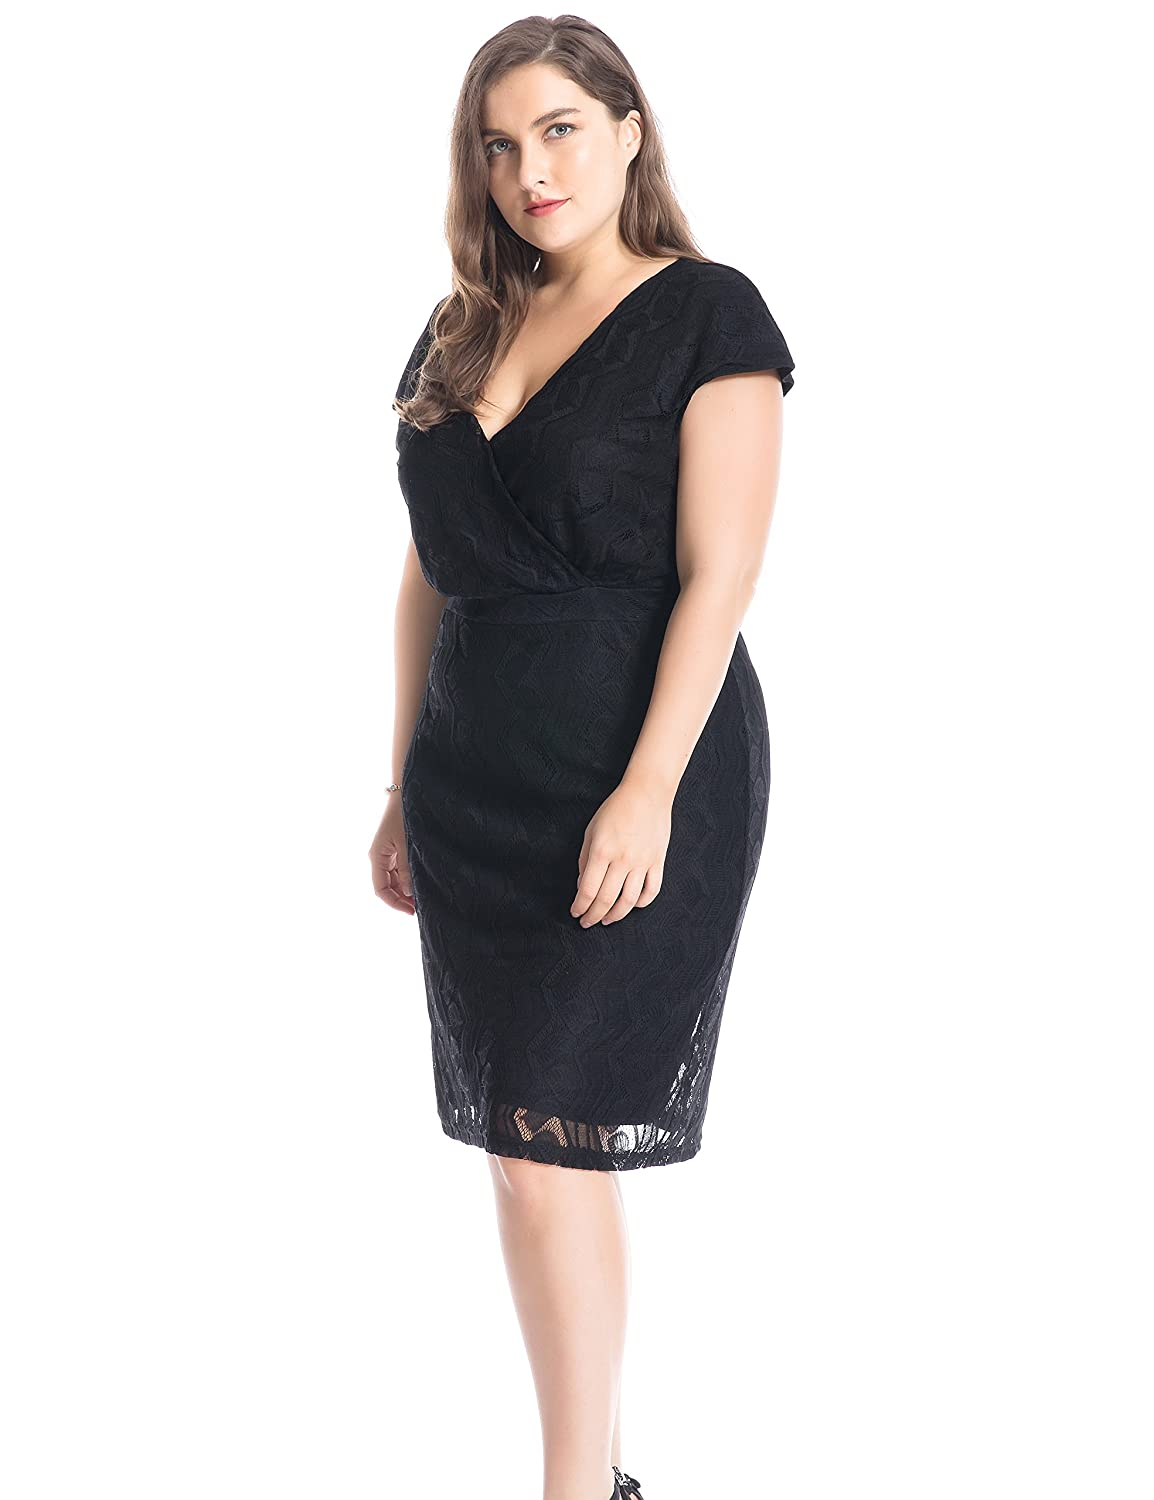 7b0b9b9dcf5 Chicwe Women s Plus Size Lined Cross Over V Neck Solid Lace Dress - Knee  Length Casual and Work Dress at Amazon Women s Clothing store